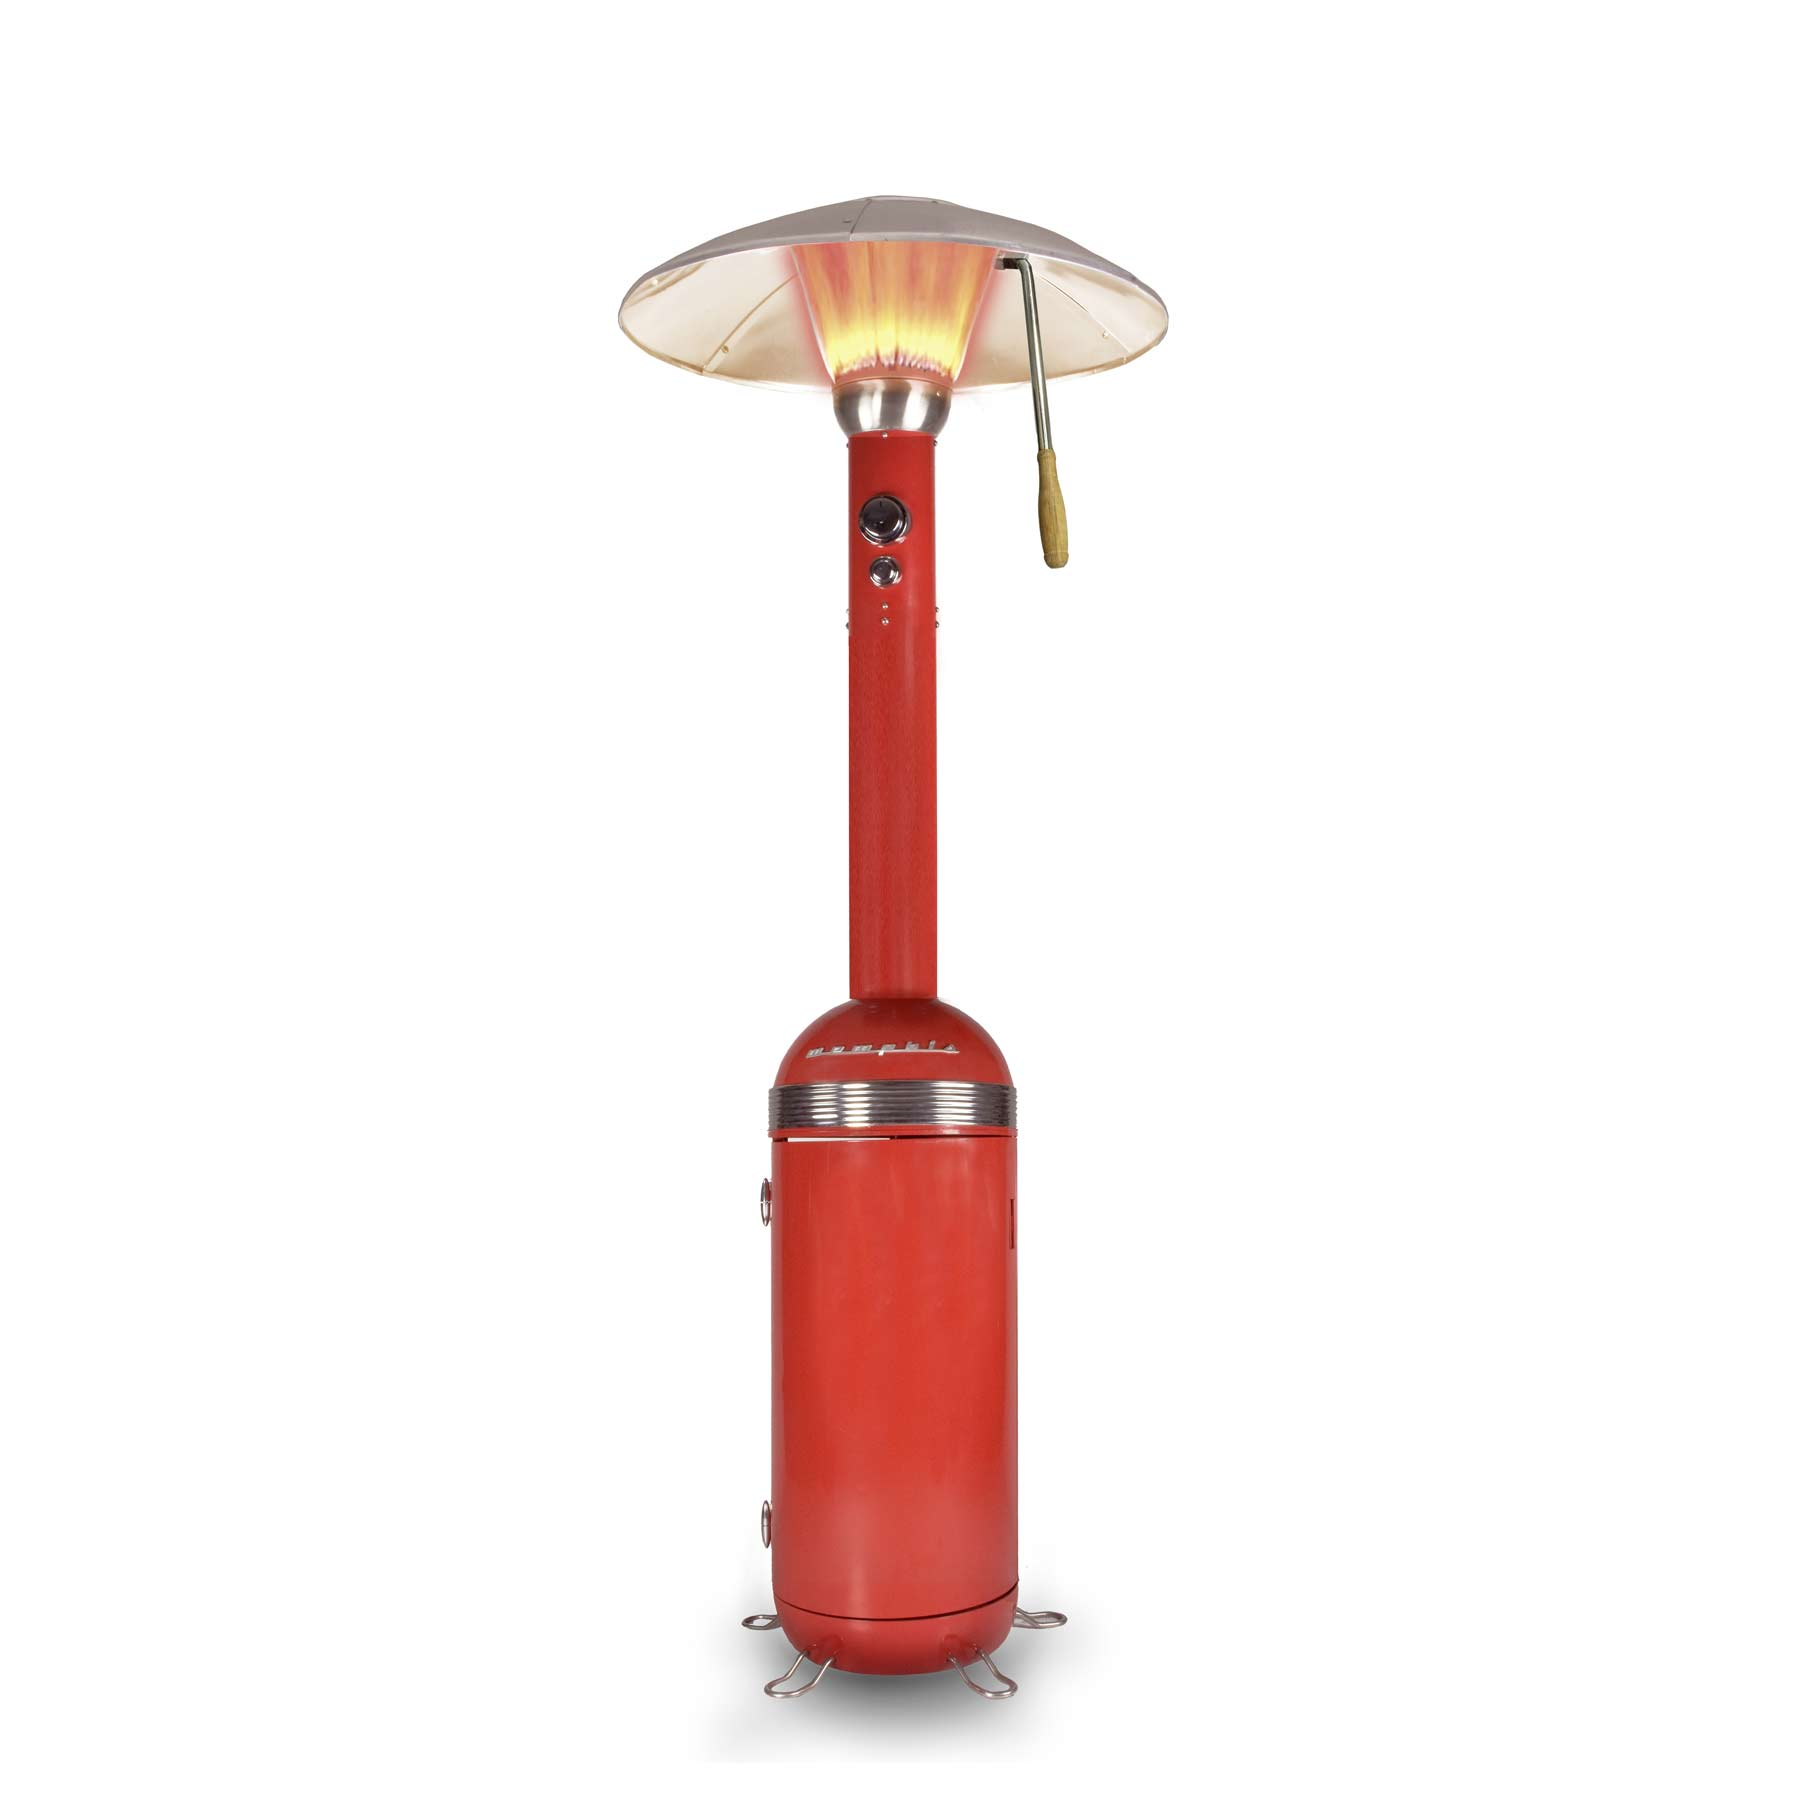 Memphis Heat Focus Patio Heater Red 13kW